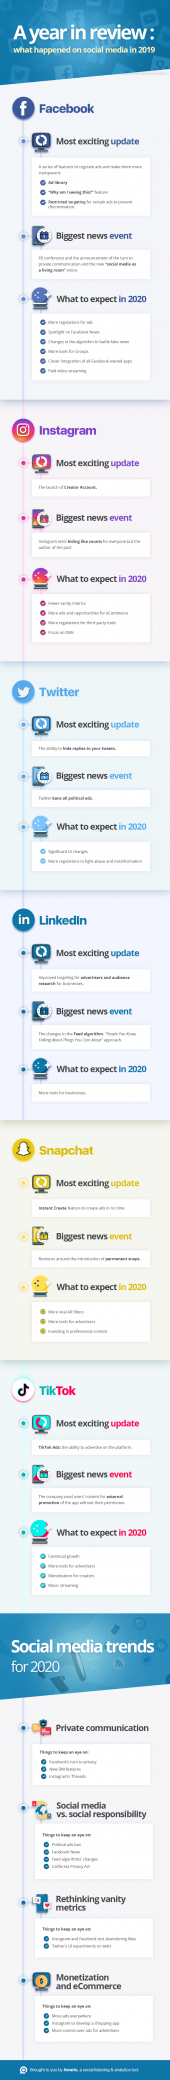 A Year in Review: What Happened on Social Media in 2019 [Infographic]